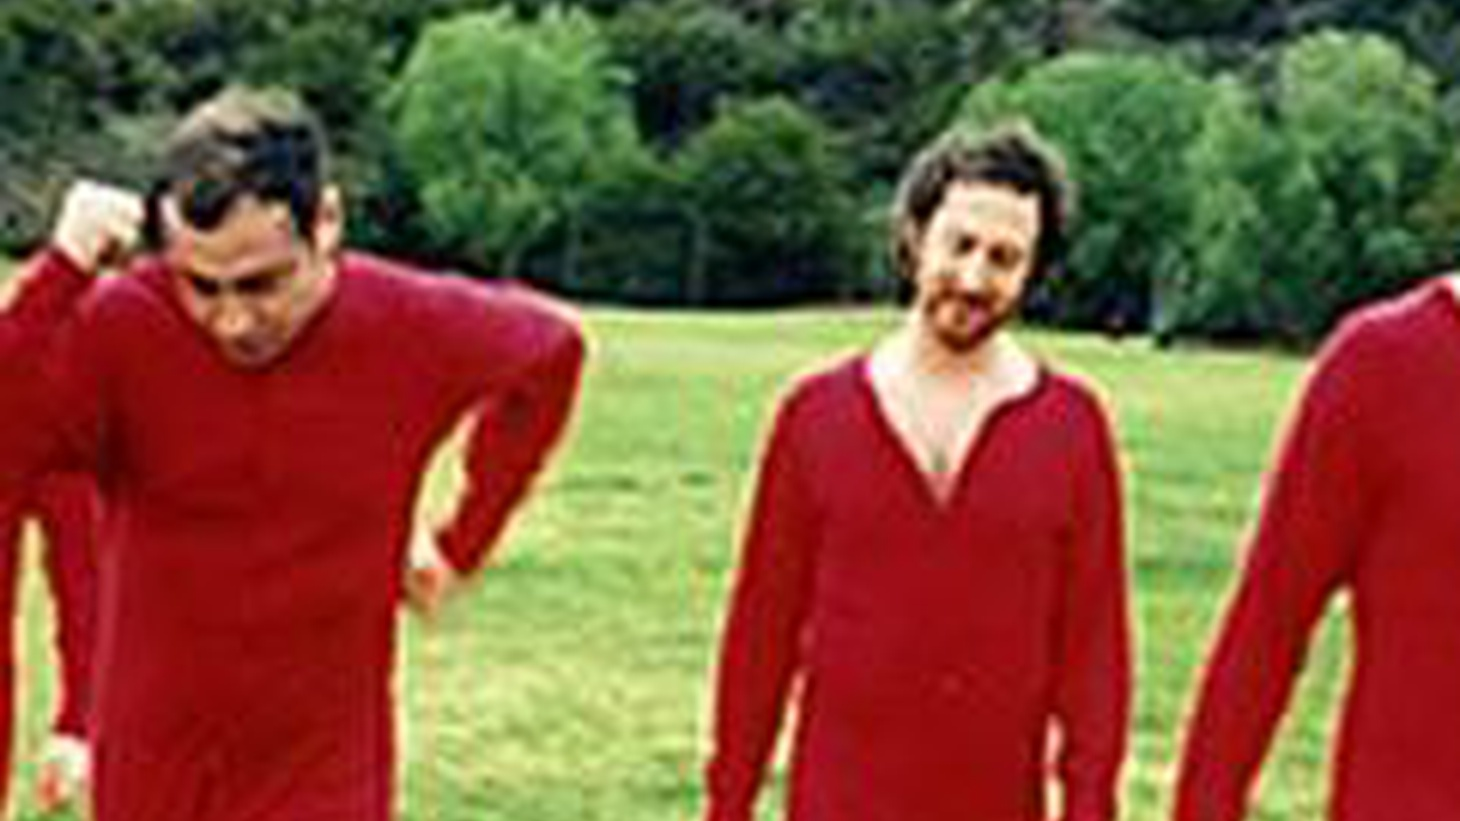 Boston based trio, Guster, bring good, clean fun to Morning Becomes Eclectic listeners at 11:15am. Click Here to Watch!